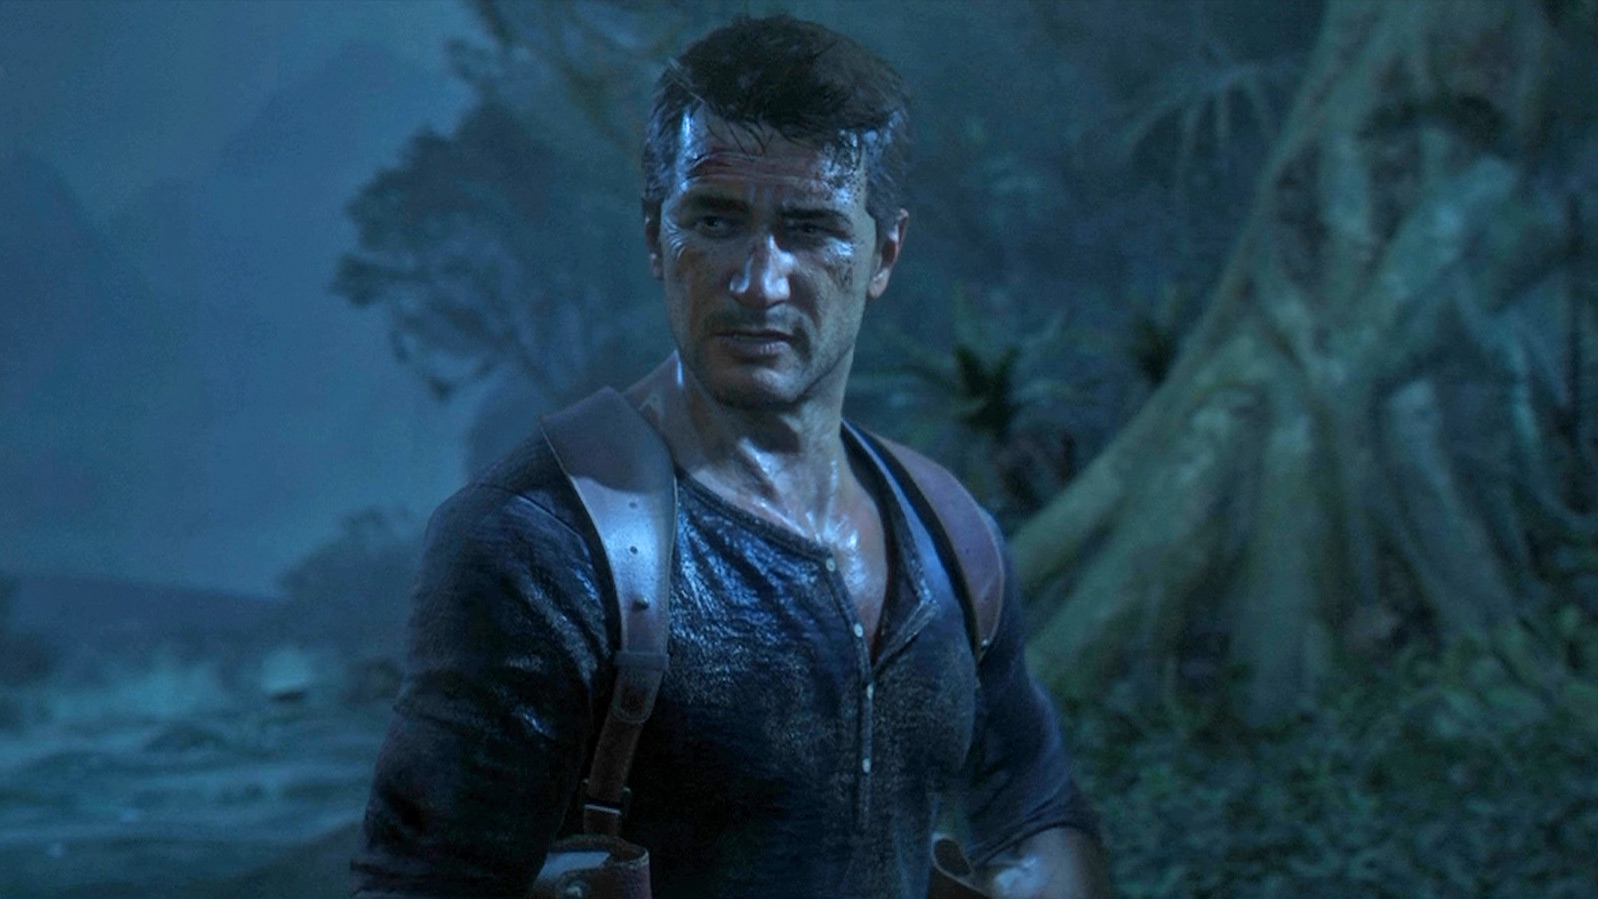 star wars actor left uncharted 4 cast after weird changes